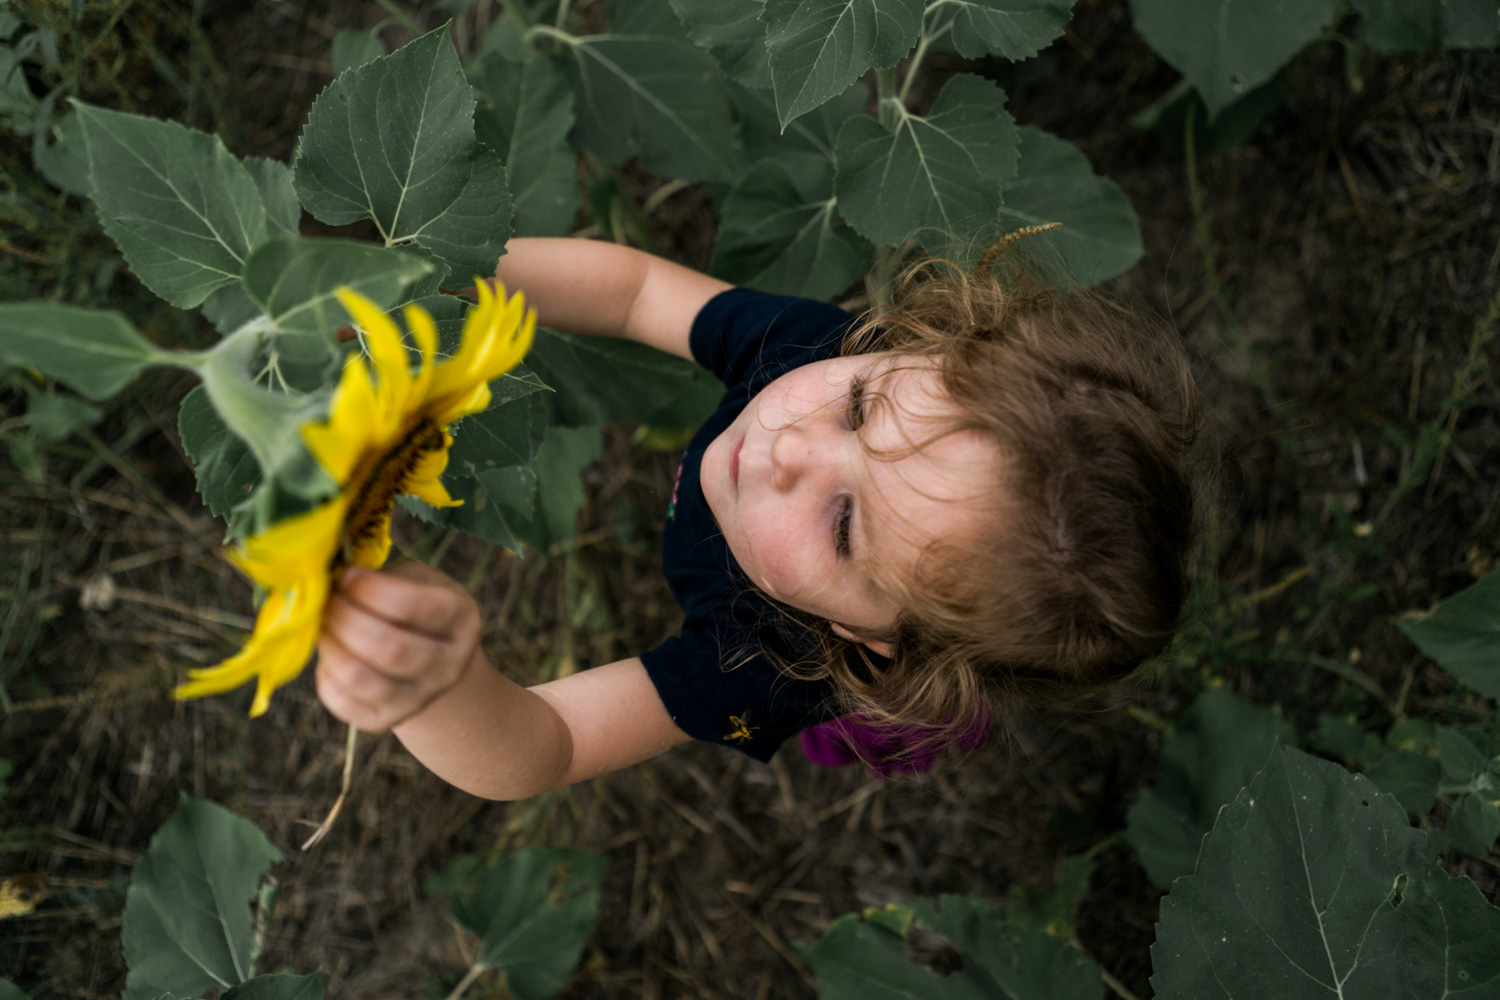 Girl reaching out for sunflower at Britt's Farm and Garden Acres Store, Manhattan Kansas. Captured by Renee McDaniel Photography.